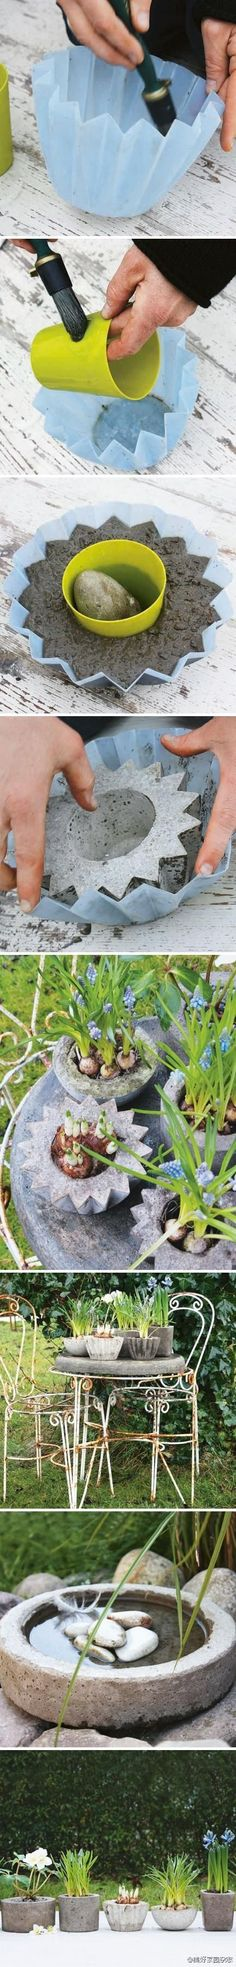 Make Your Own Concrete Planters..